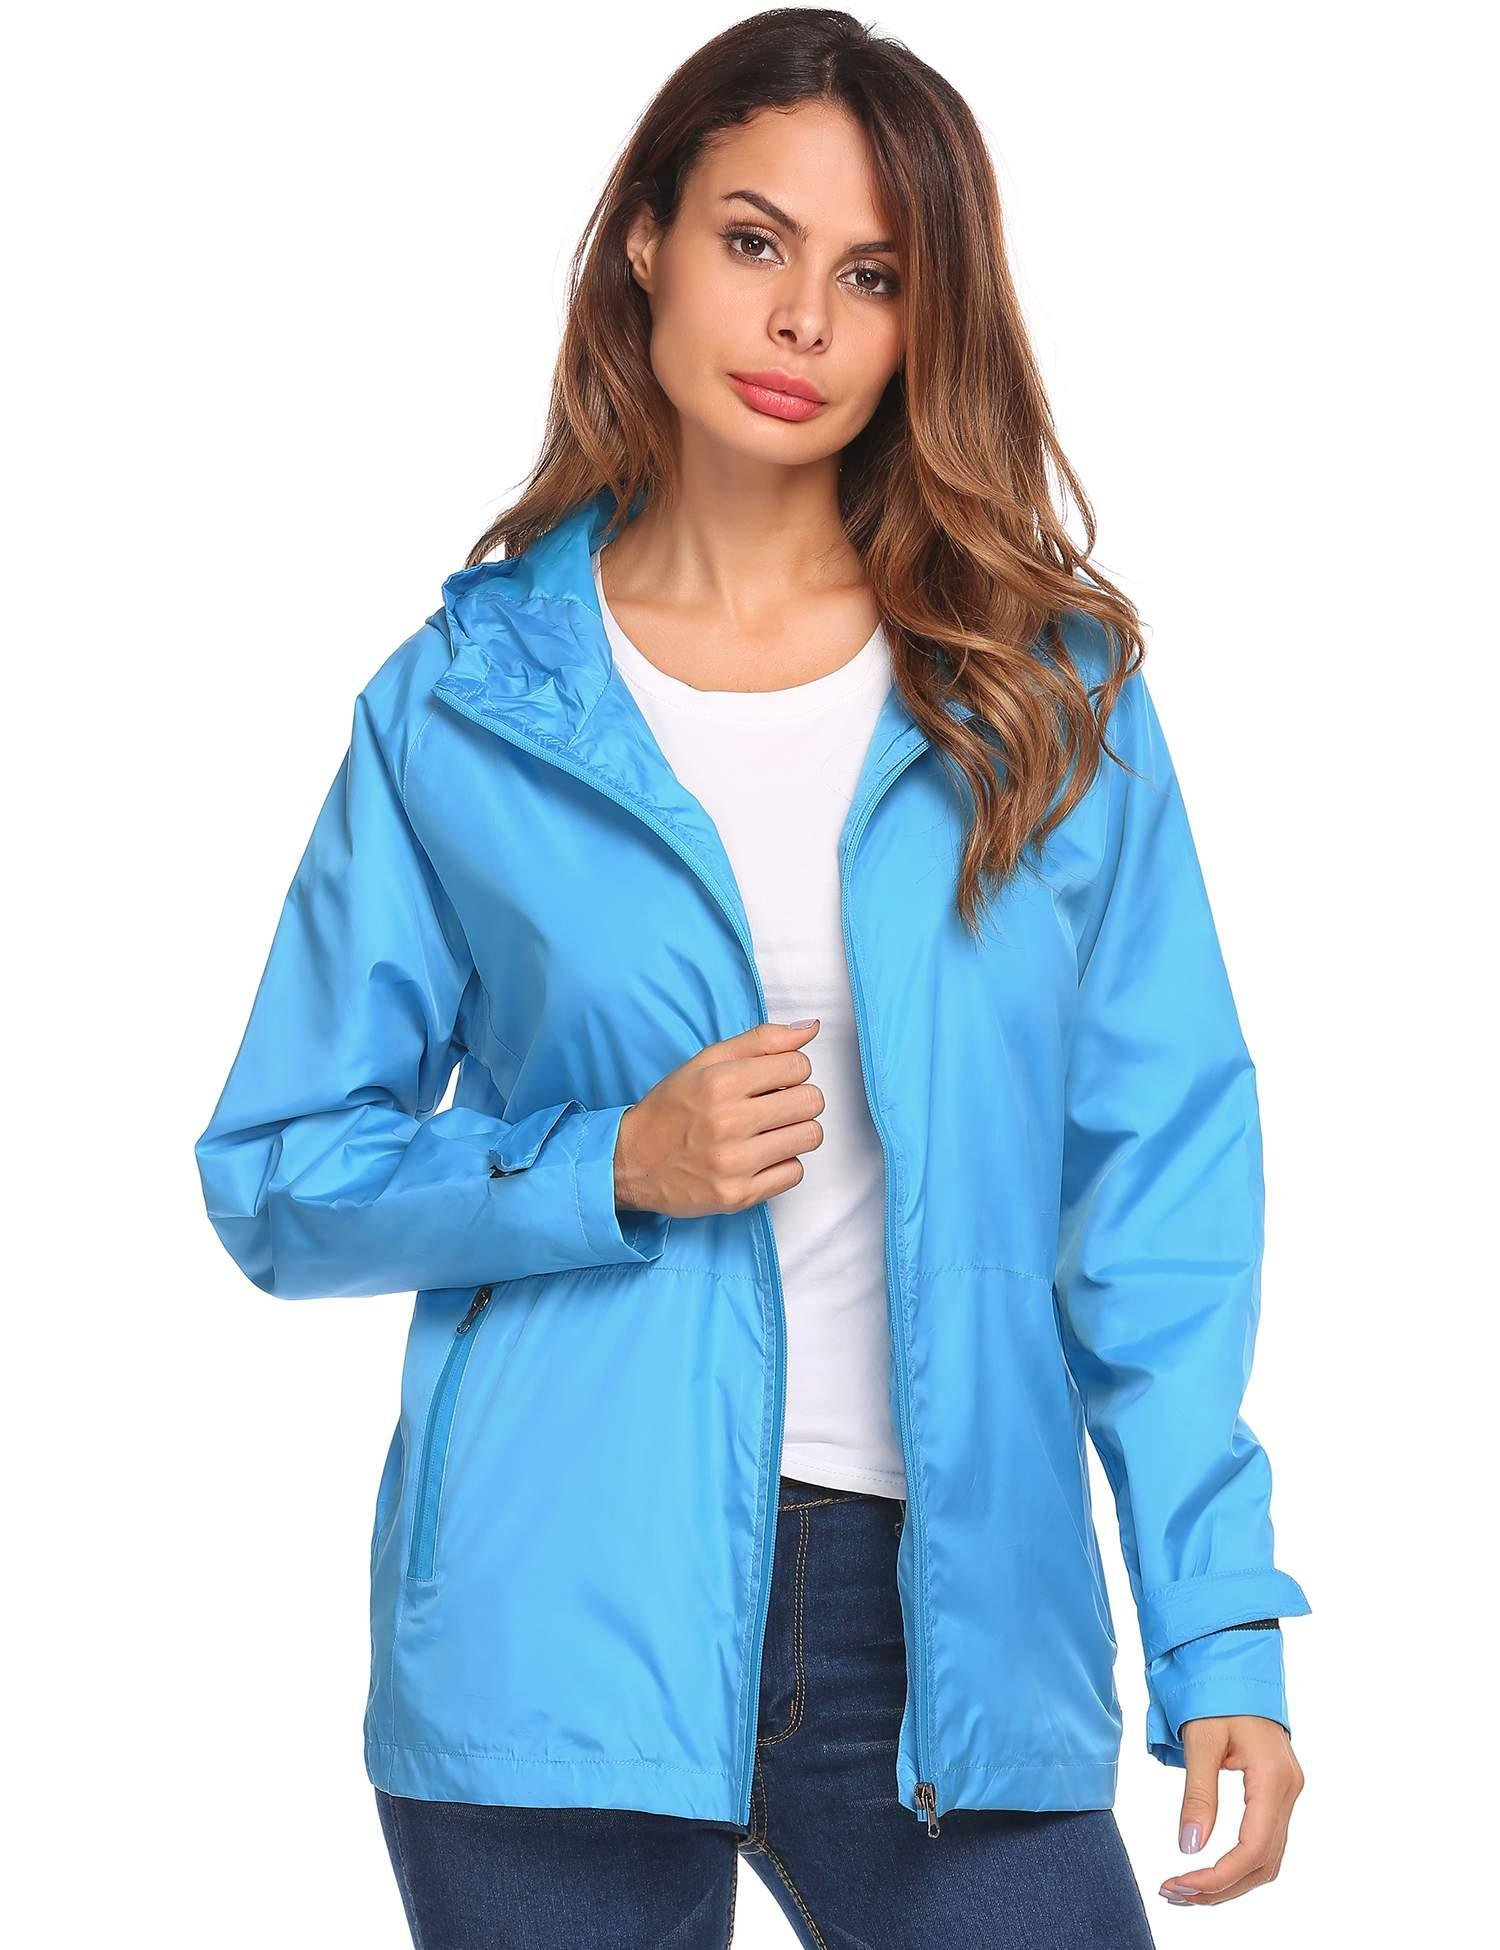 Zeagoo Women's Quick Dry Rain Jacket Lightweight Waterproof Outdoor Hooded Windbreaker Raincoat